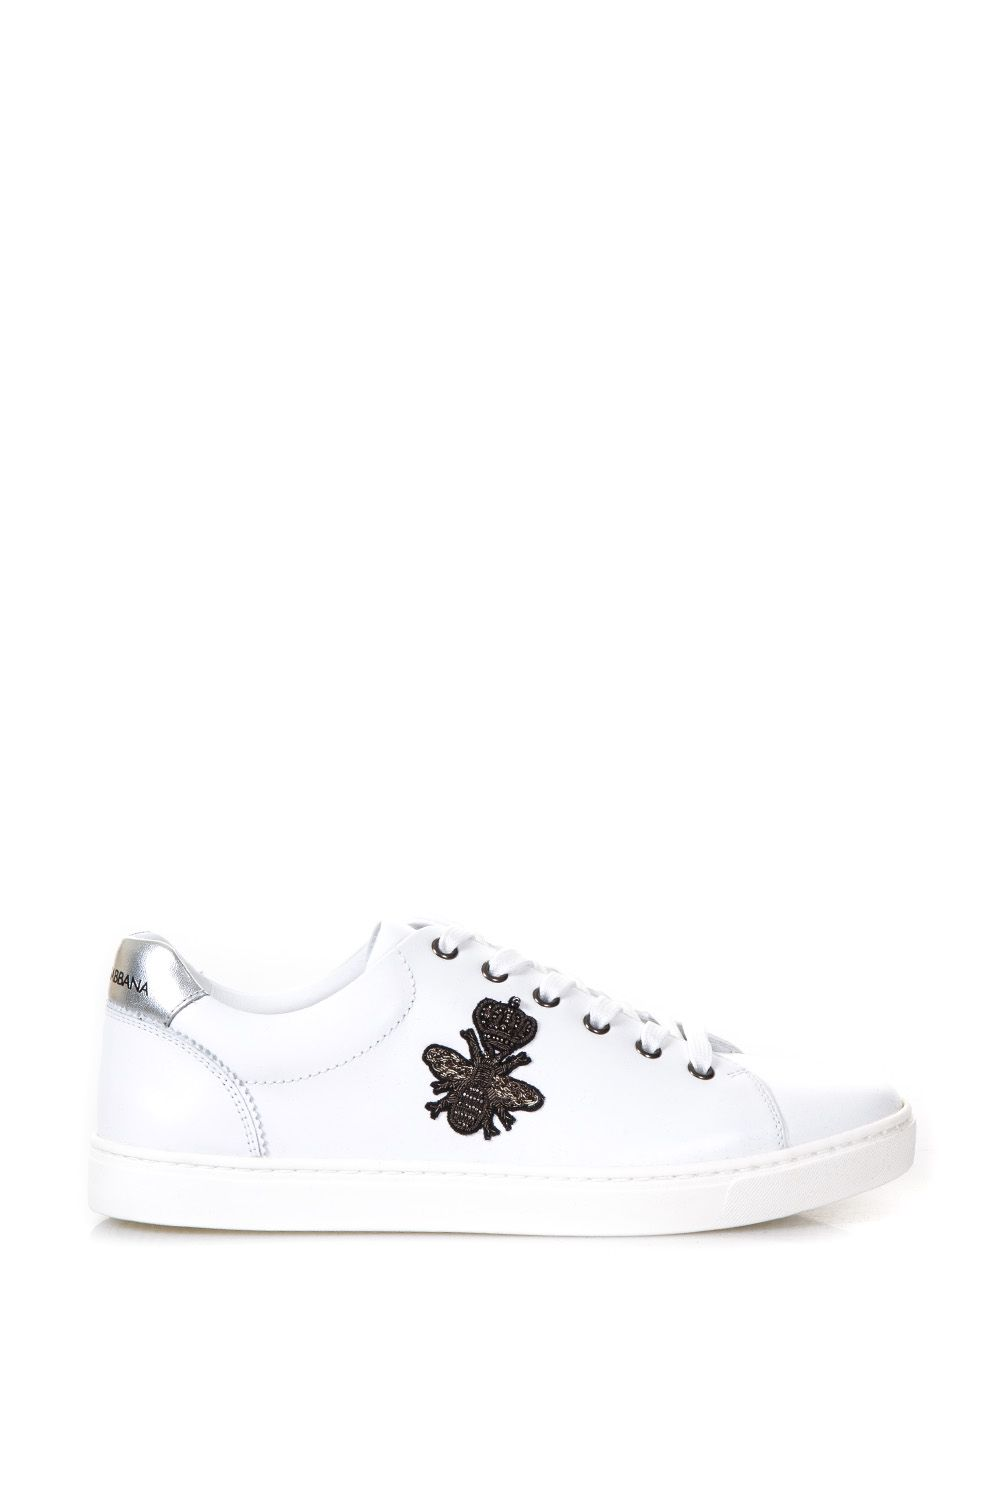 Dolce & Gabbana London Embroidered Leather Sneakers